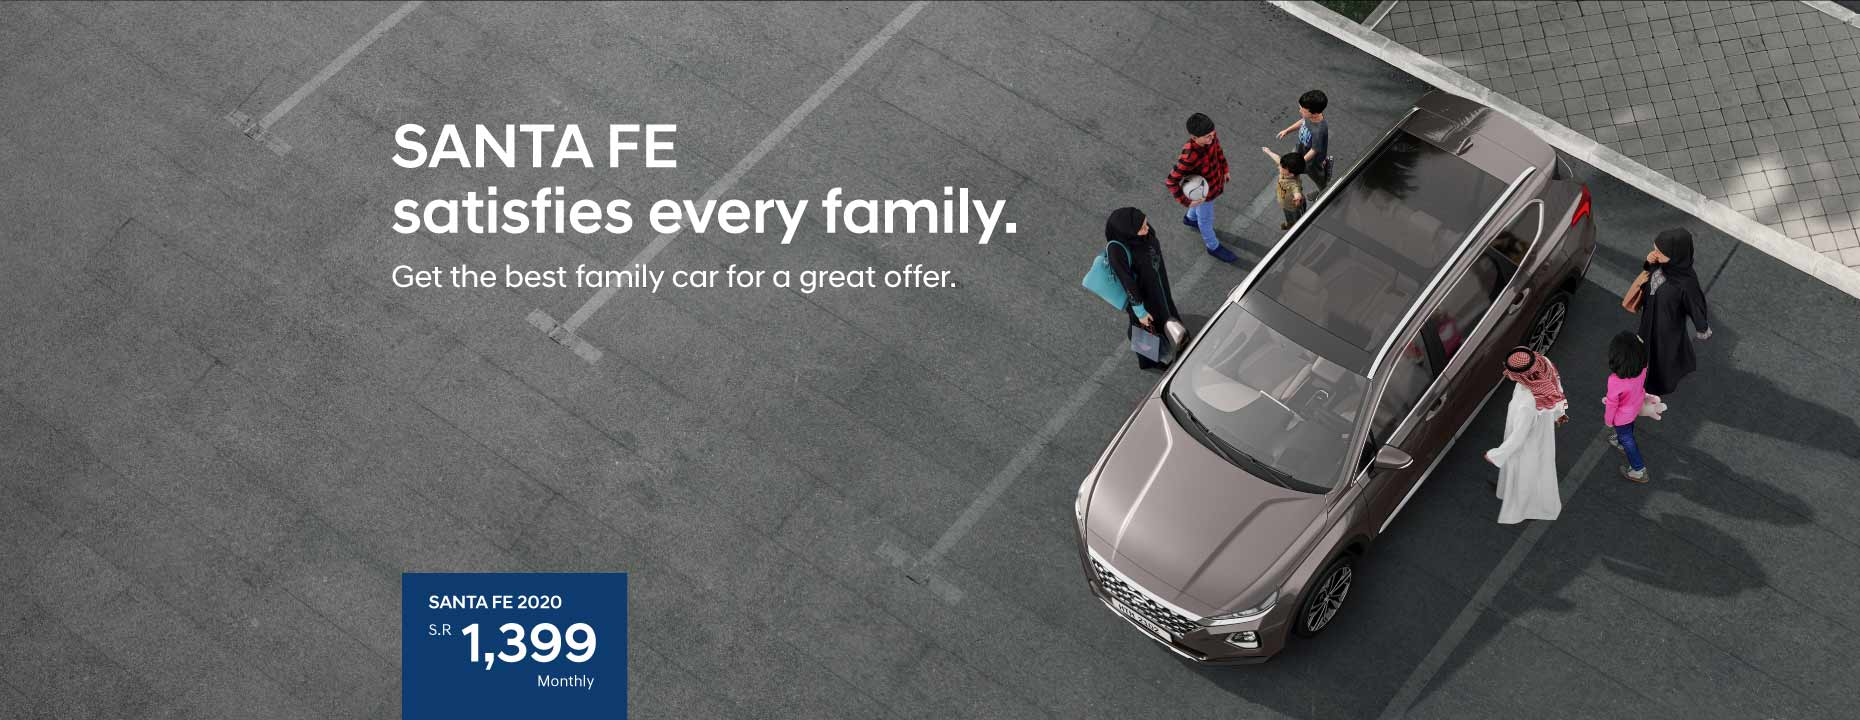 Santa Fe satisfies every family. Avail great offers on the ultimate family-adventure car!